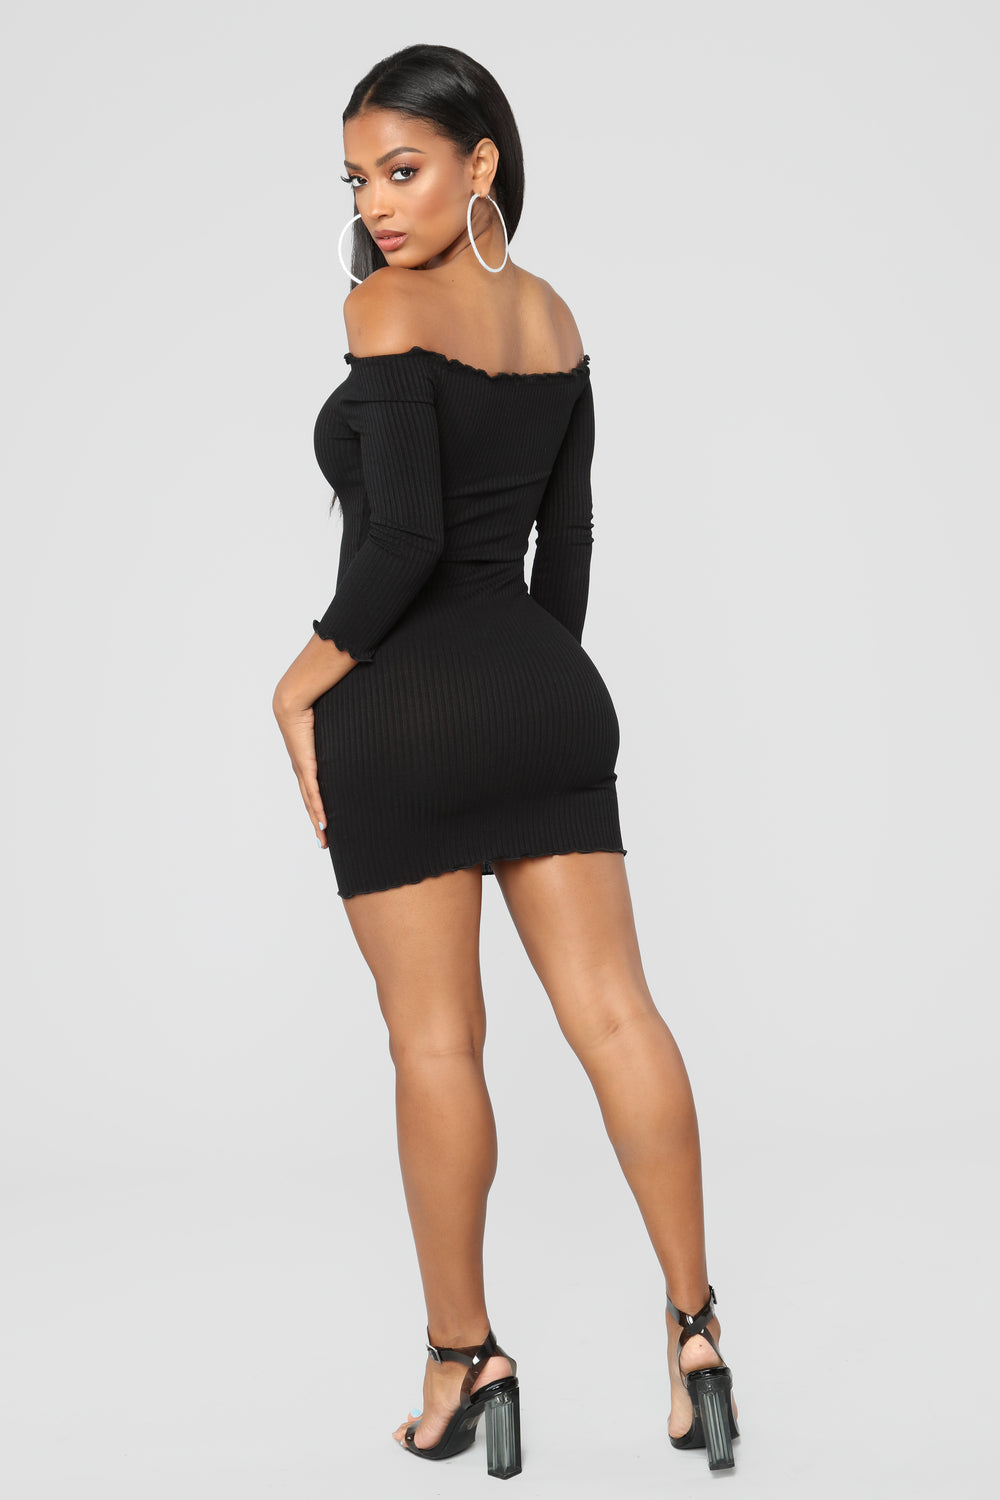 Curious Is This Serious Off Shoulder Dress - Black